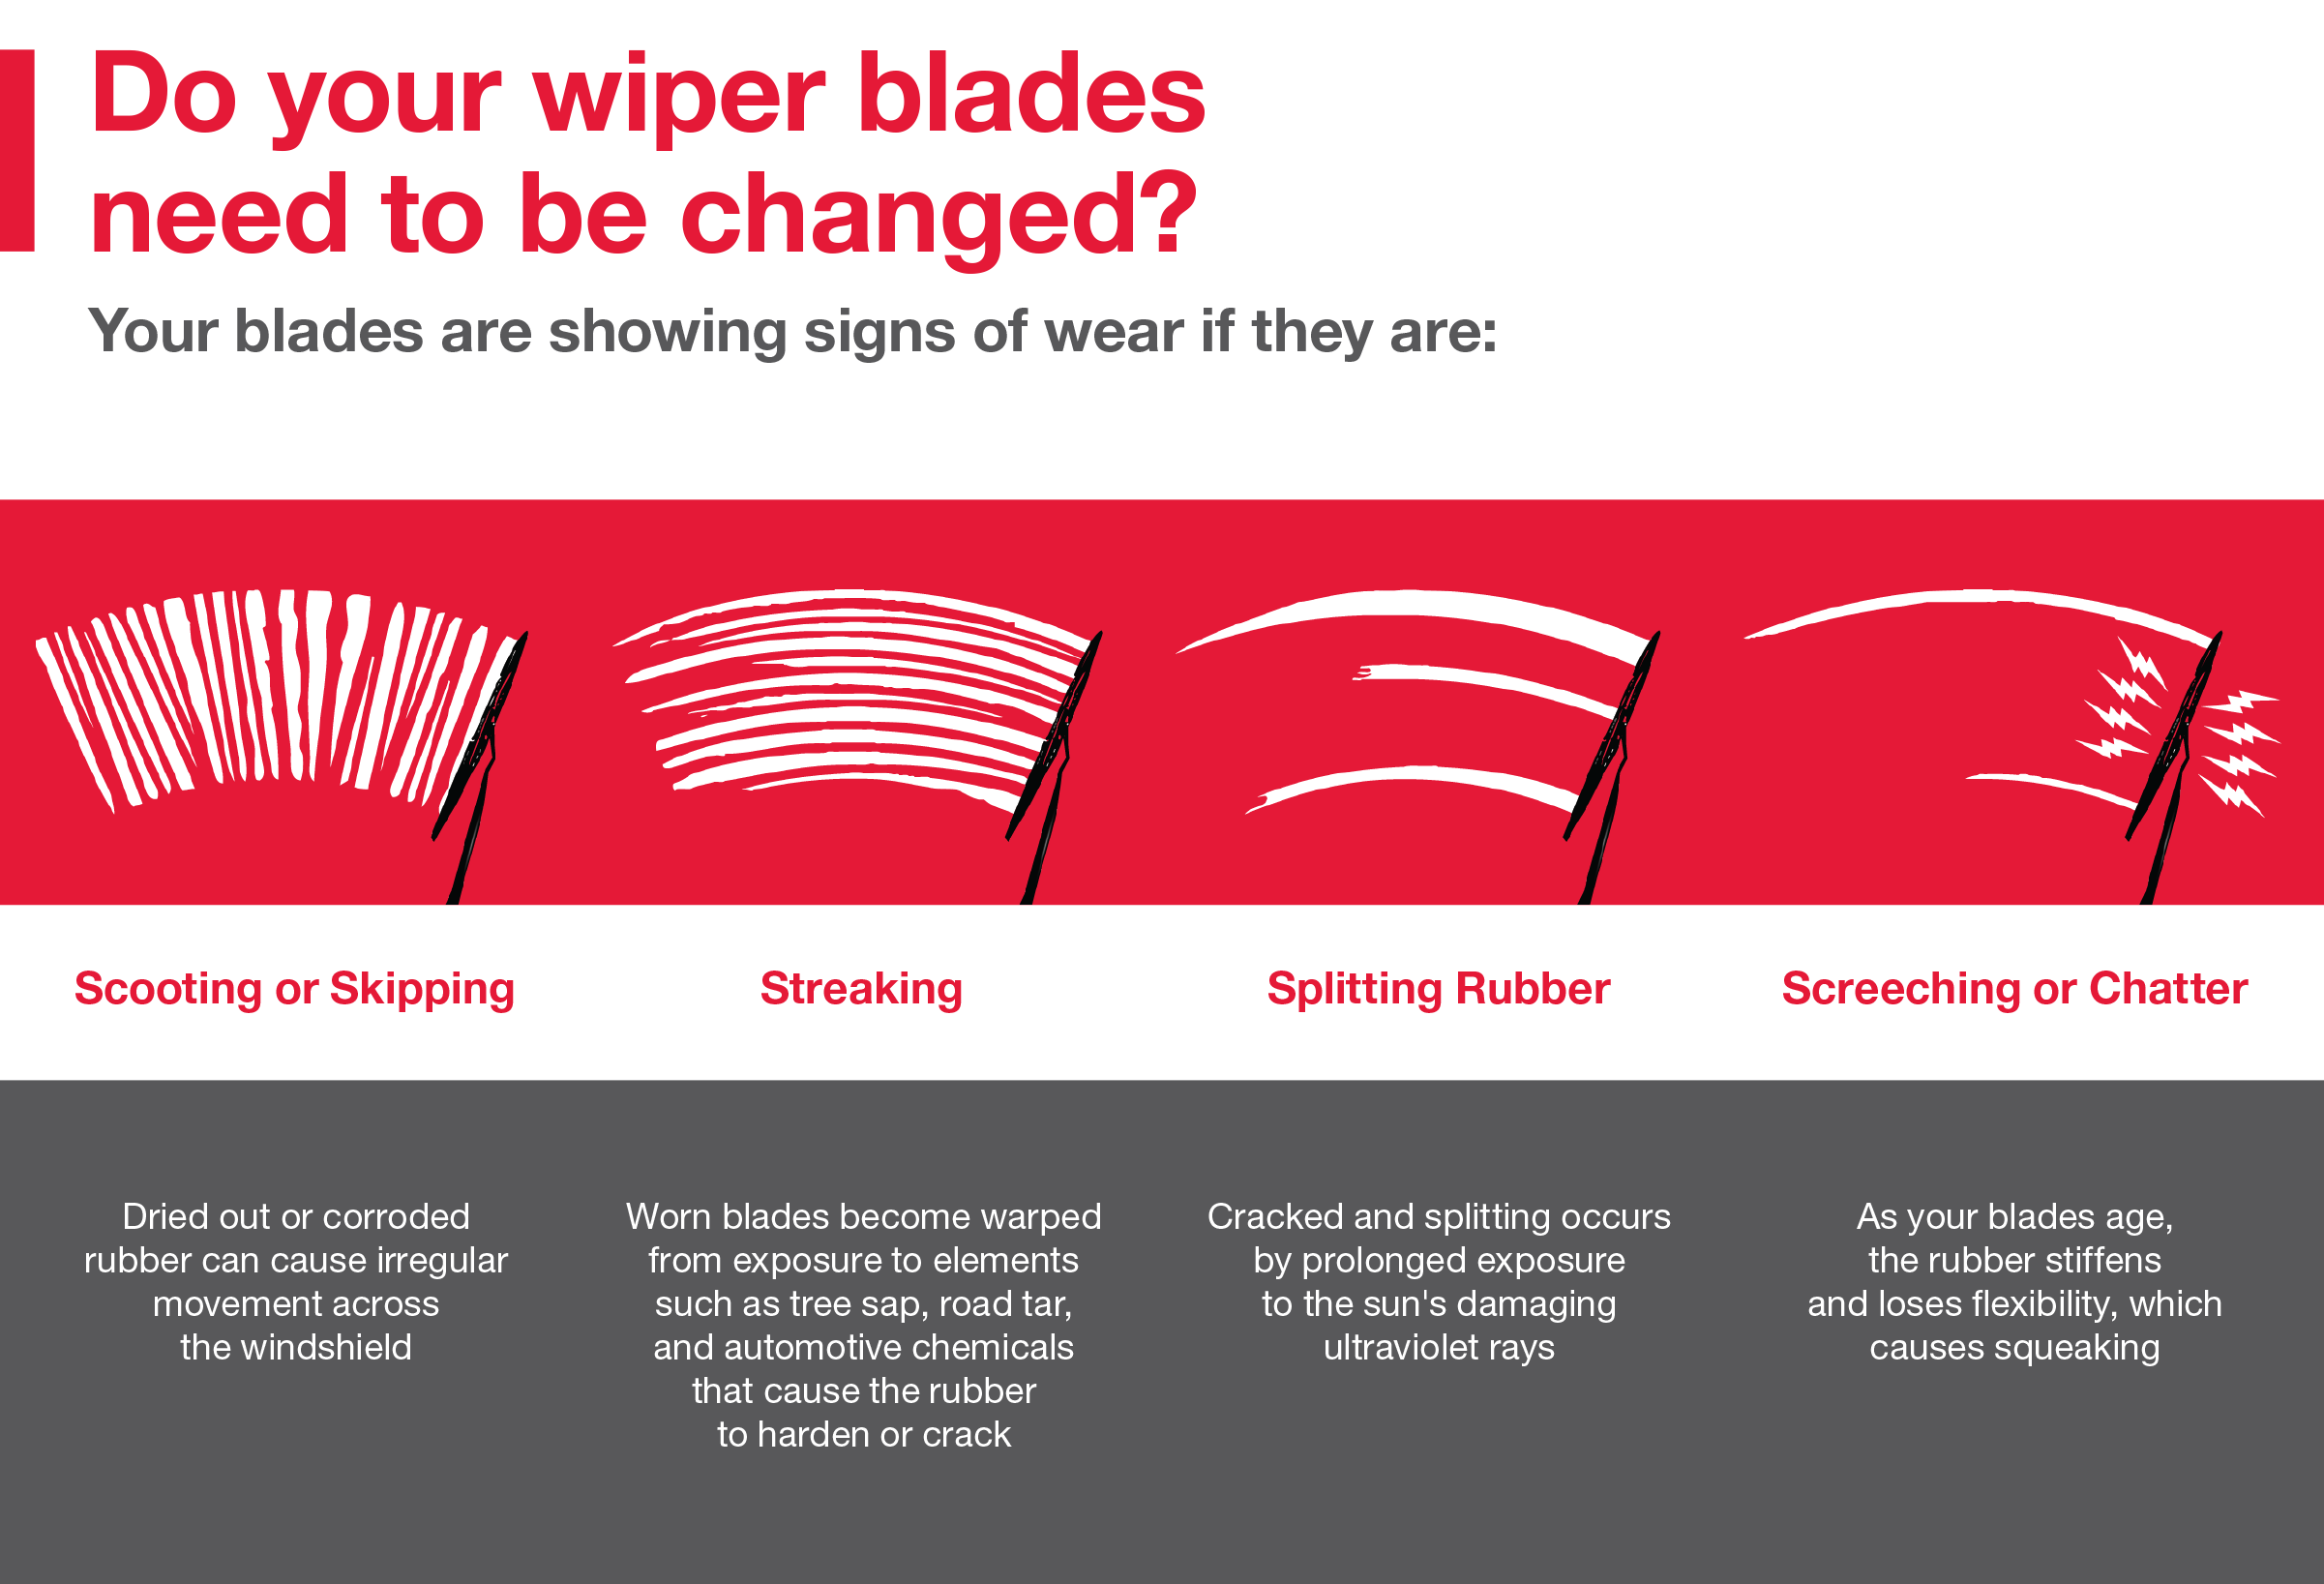 Do your wiper blades need to be changed? Call your local dealer for more info: 951-319-7903